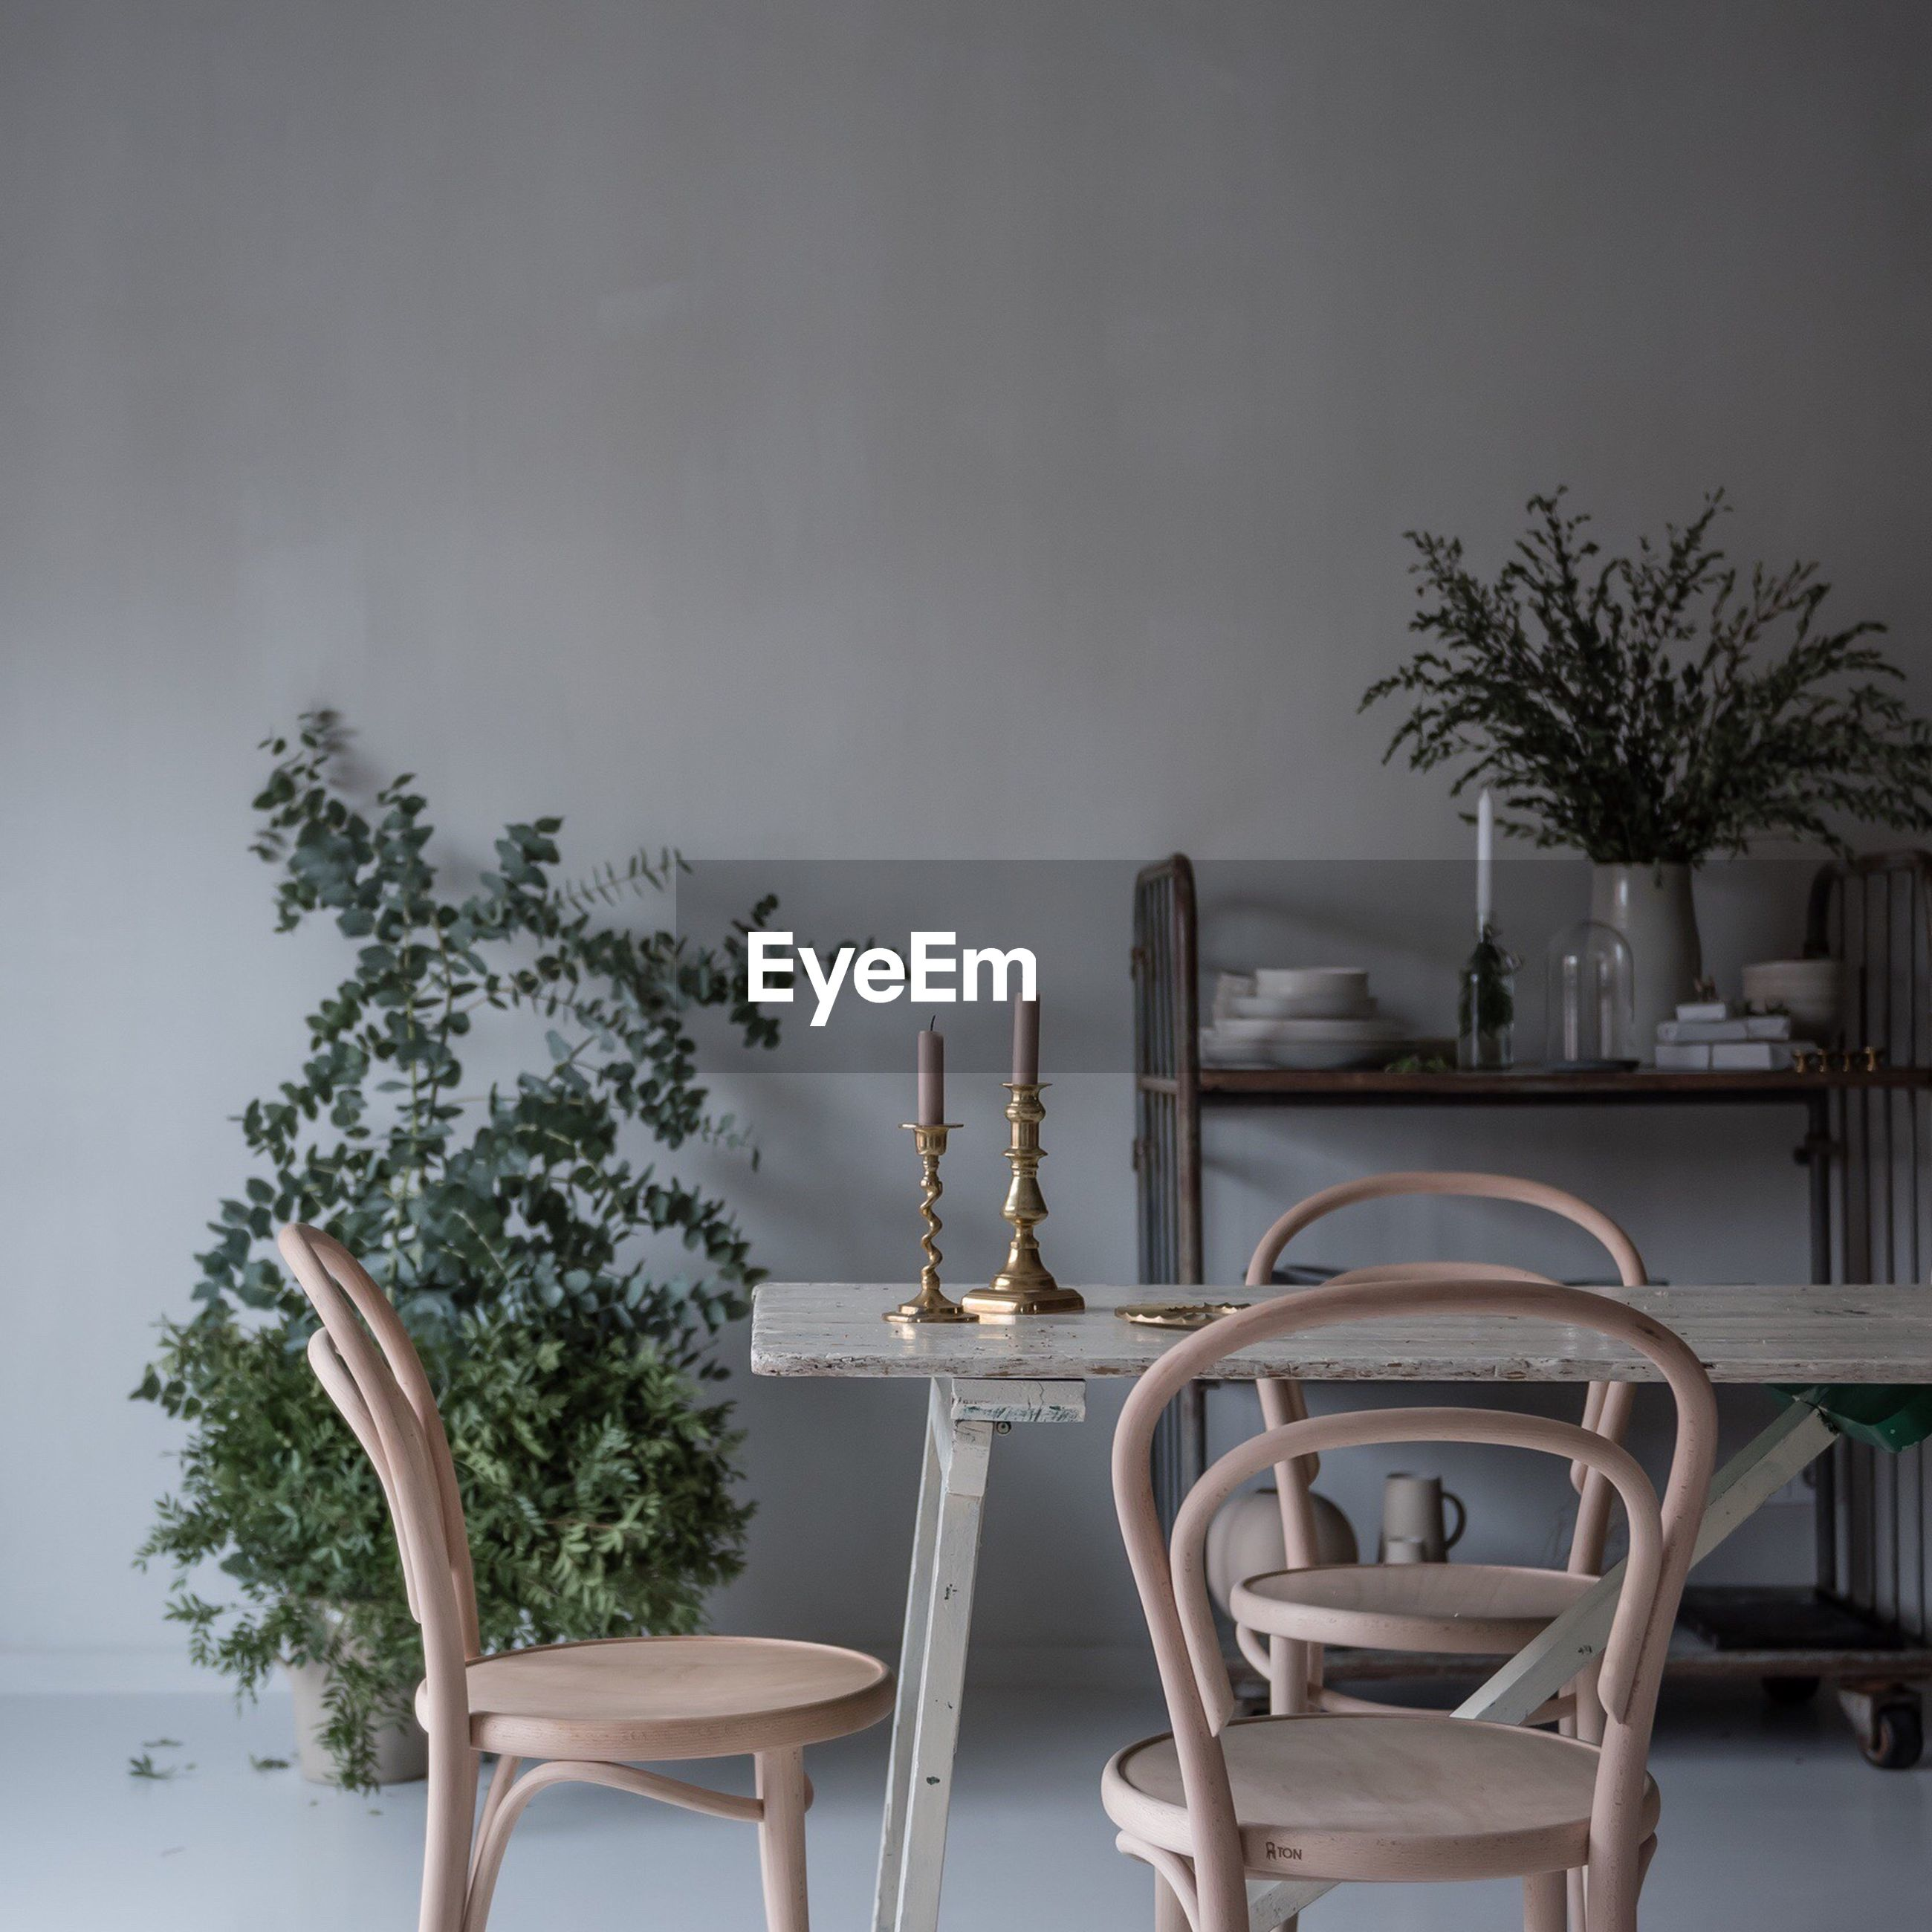 Potted plants by table and chairs